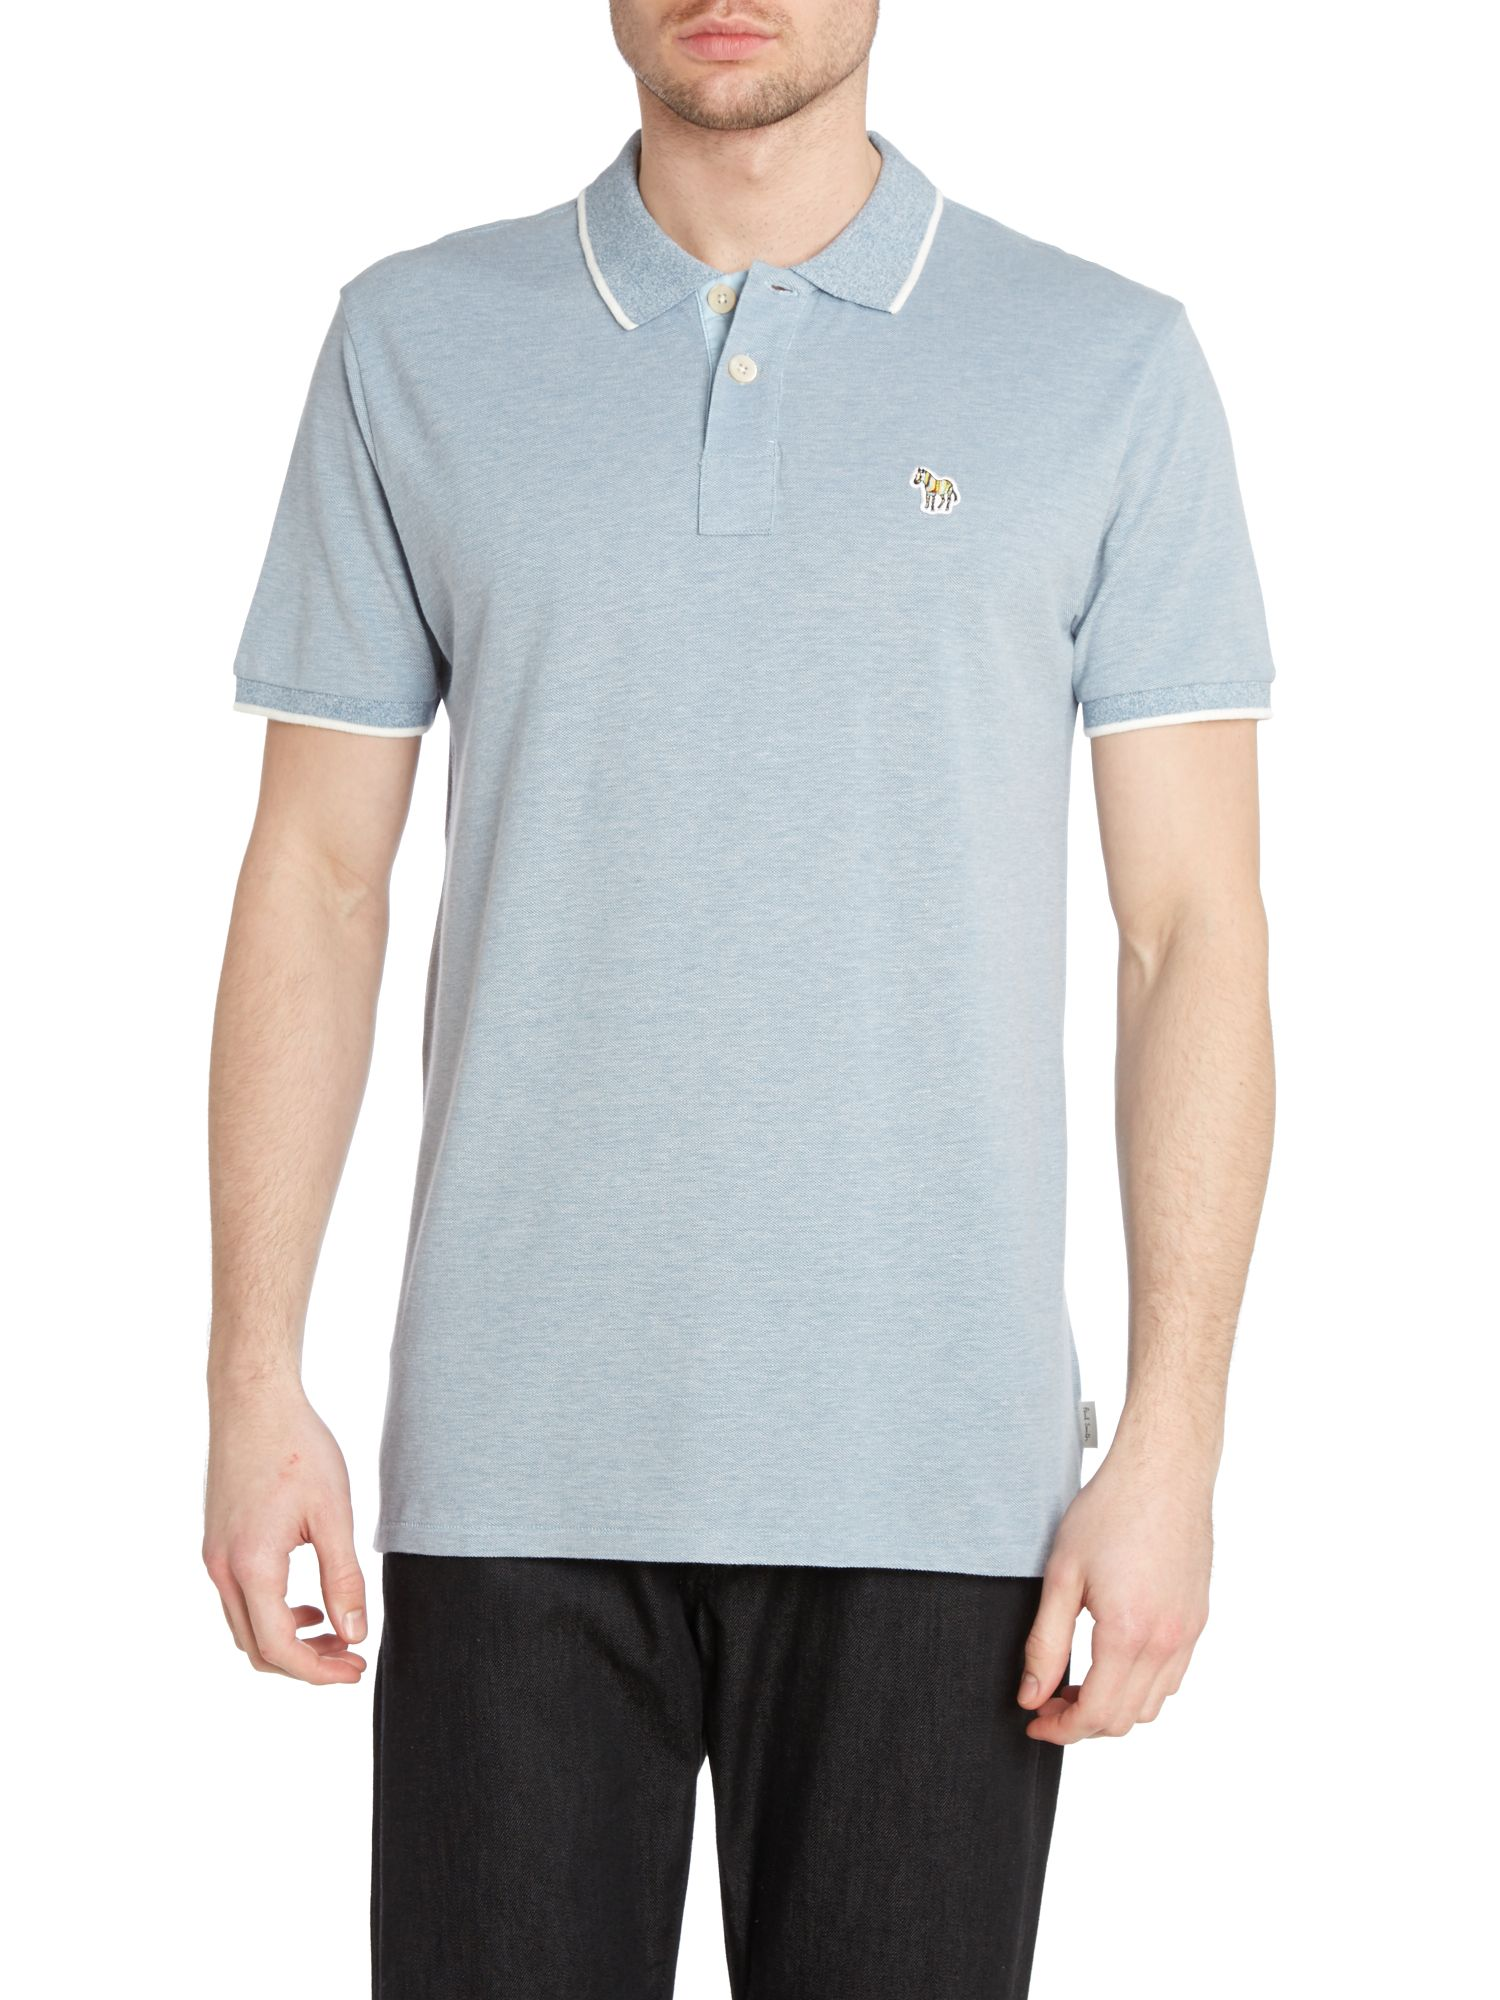 Regular fit zebra tipped polo shirt